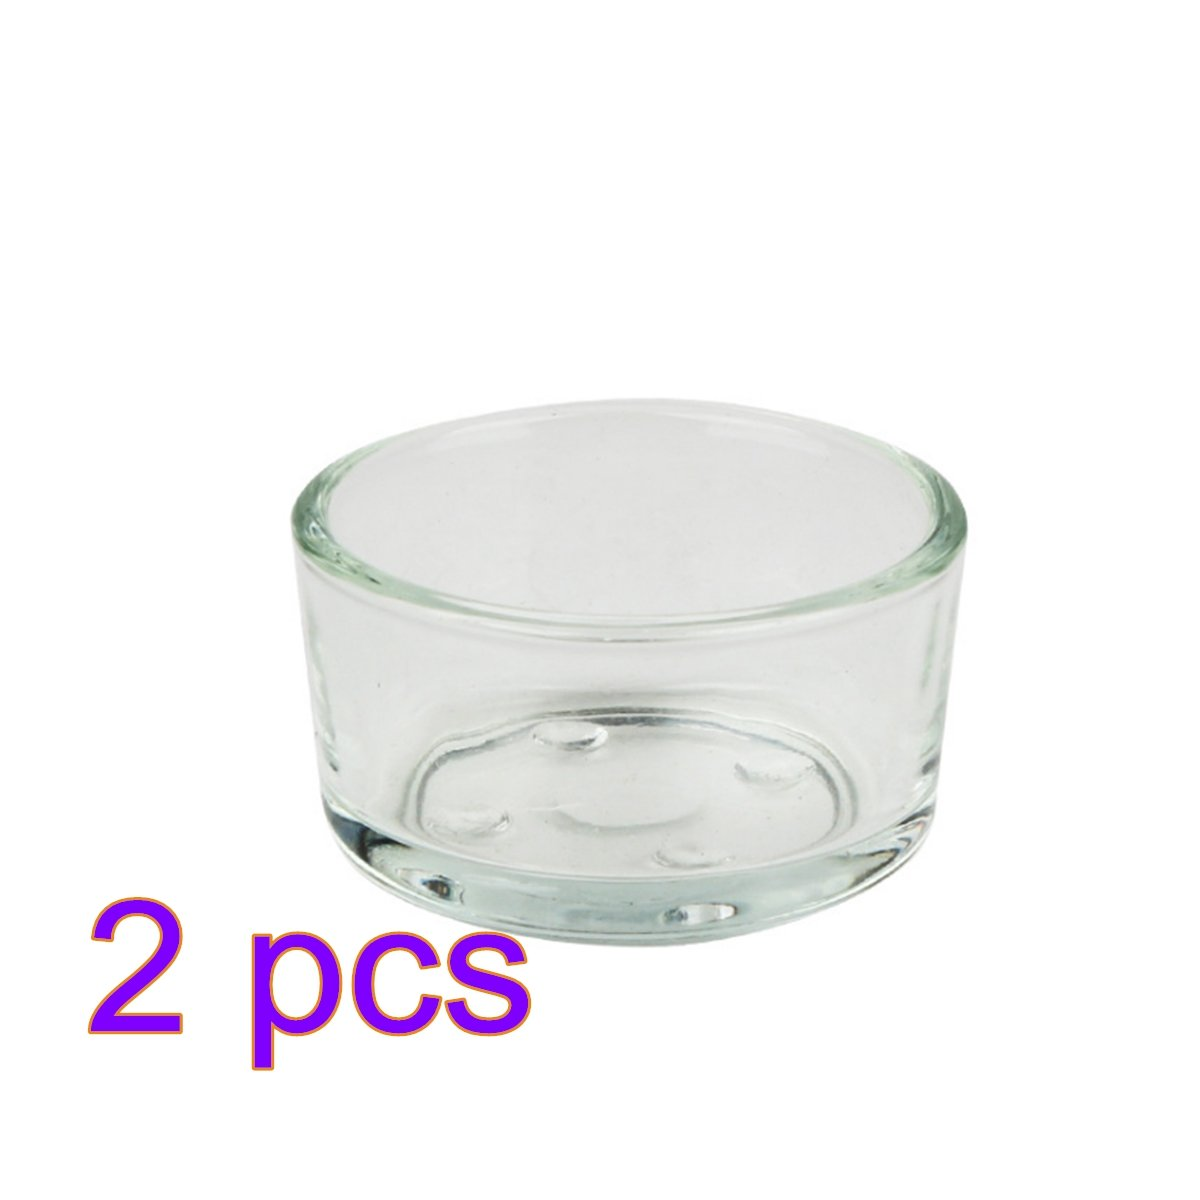 Petforu Reptile Food Dish, 2 Pack Mealworms Dish Mini Reptile Water Bowl GLASS